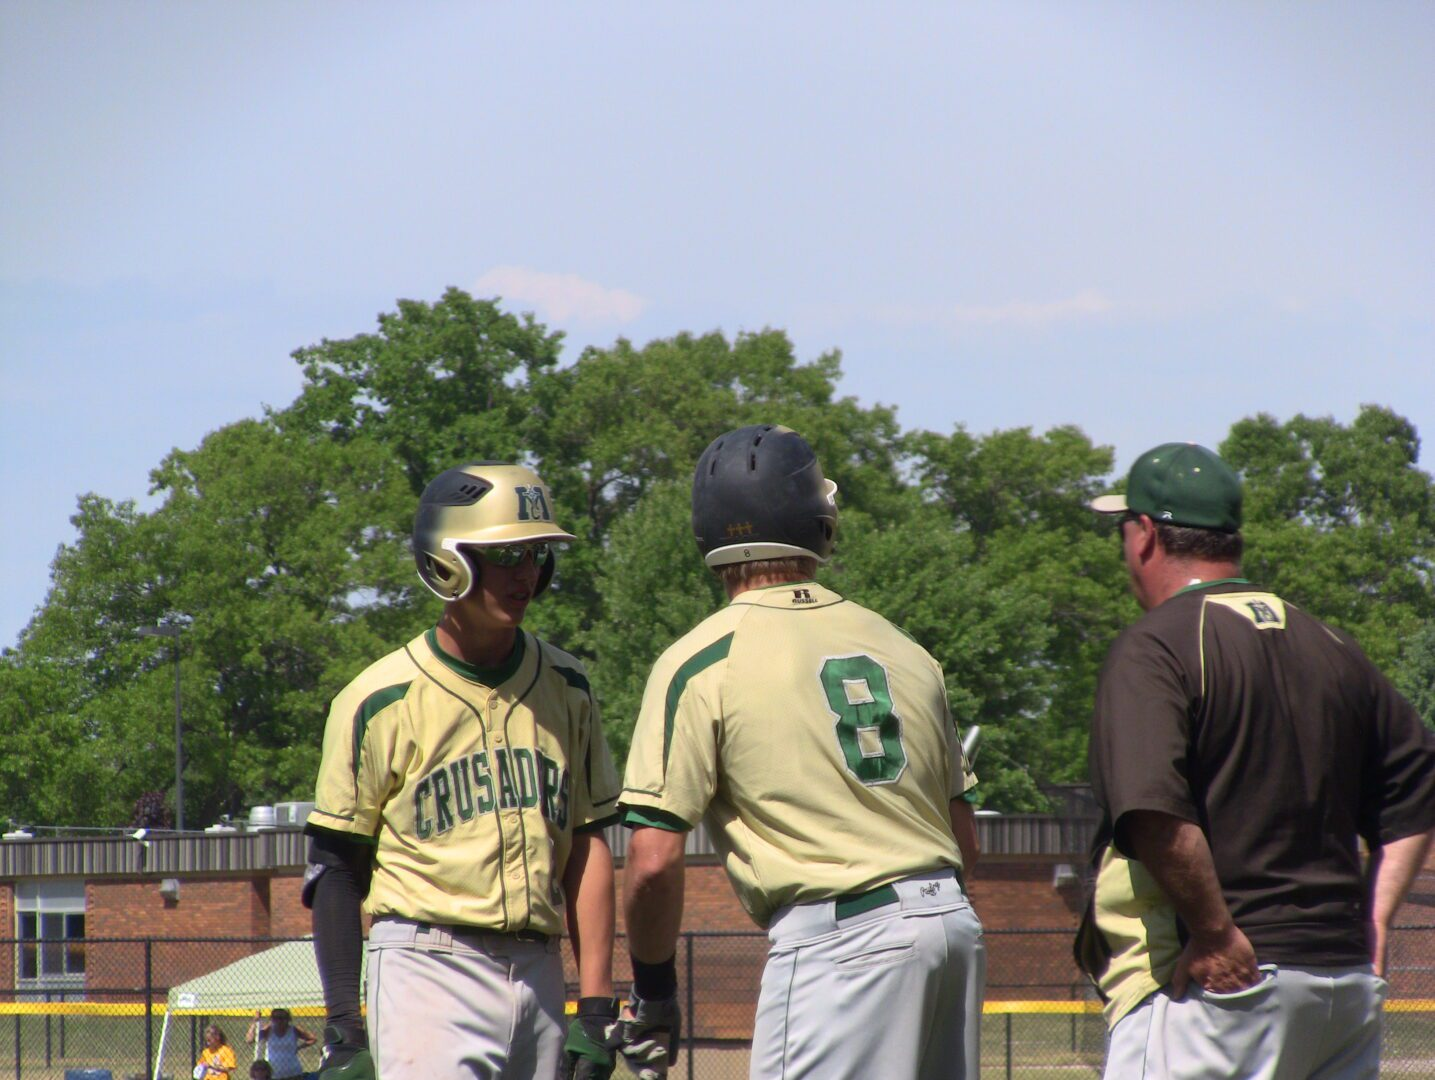 Muskegon Catholic's great baseball season ends with a dramatic 3-1, extra innings loss to Beal City